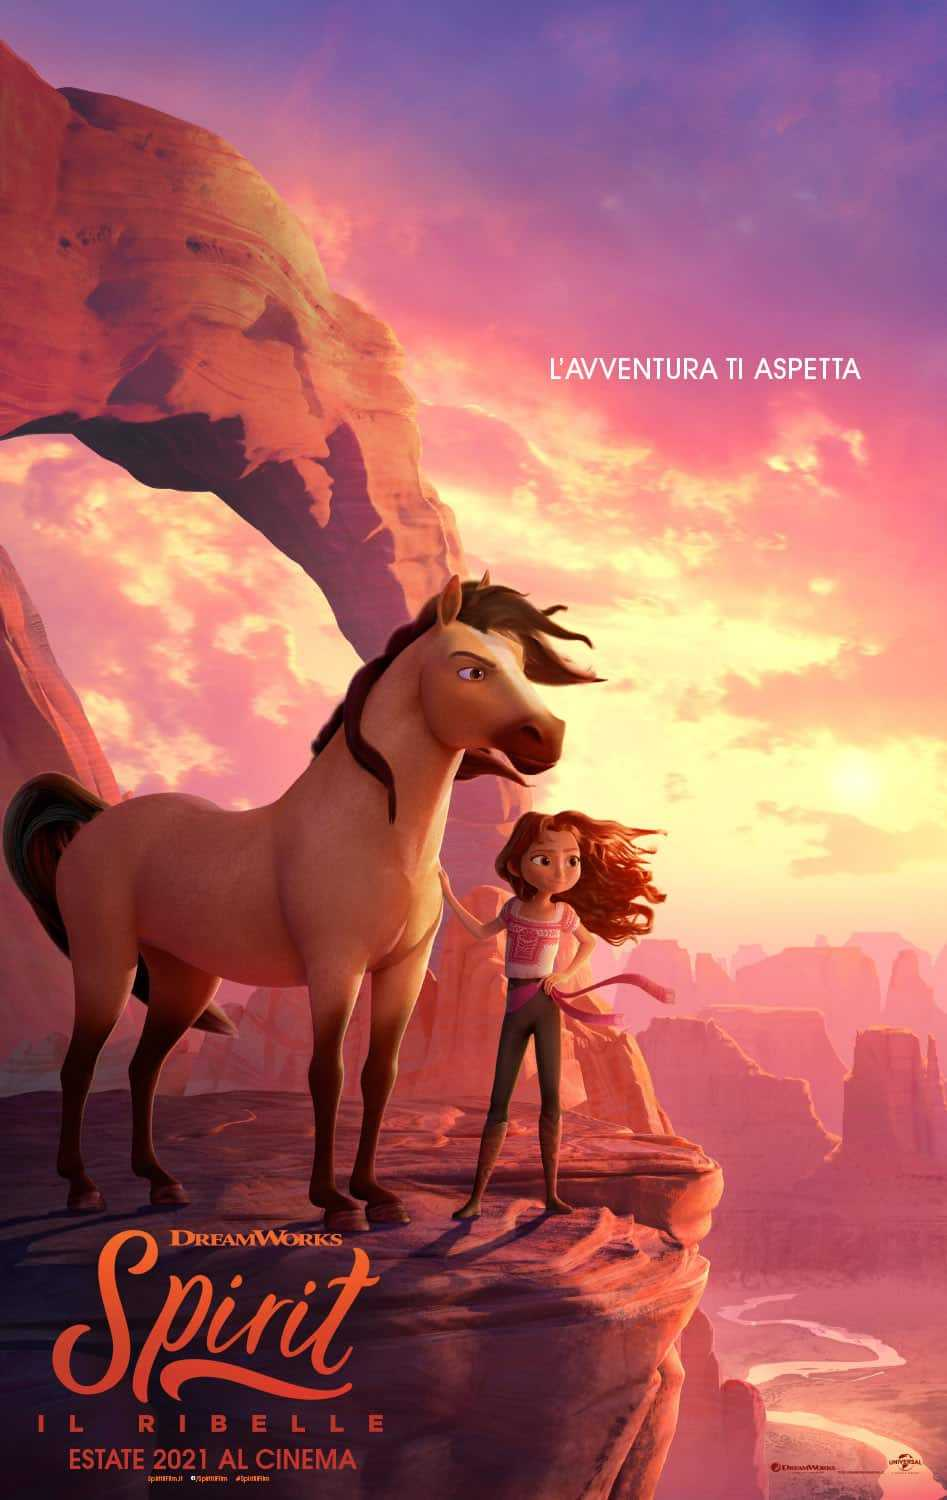 Spirit - The Rebel: the new film with the wild horse Spirit